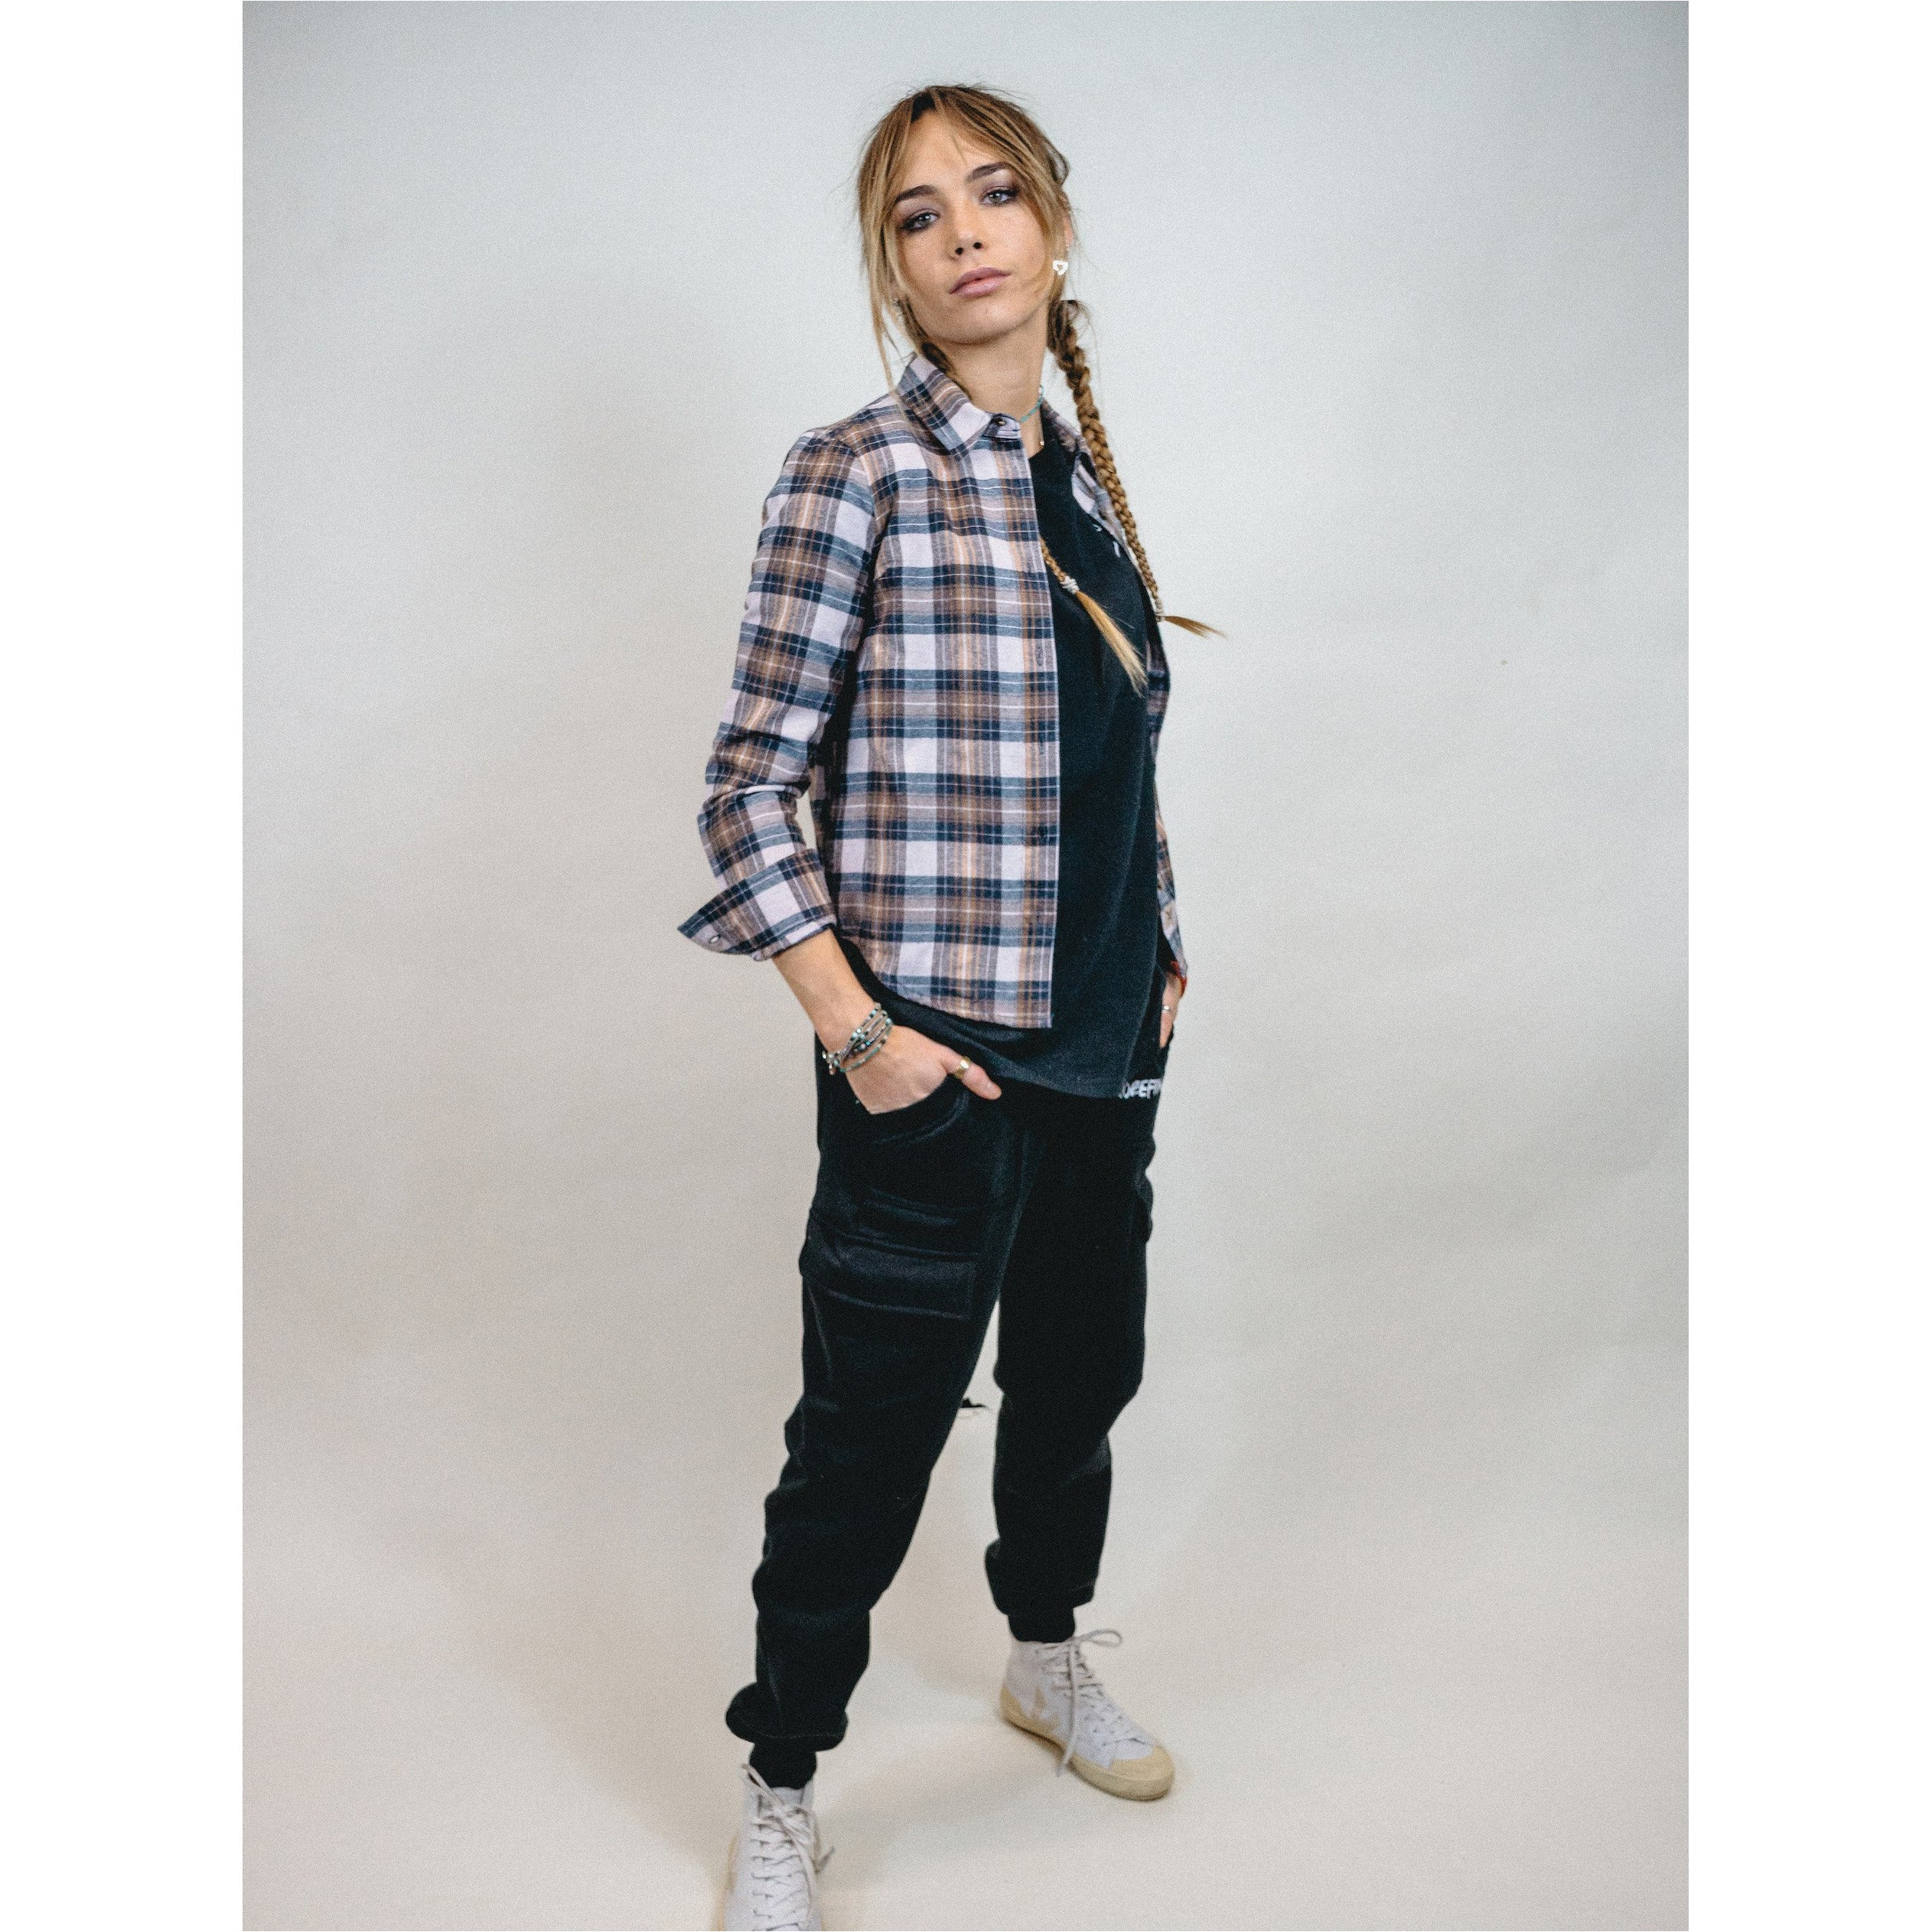 AMY WOMENS RECYCLED COTTON CHECK SHIRT.